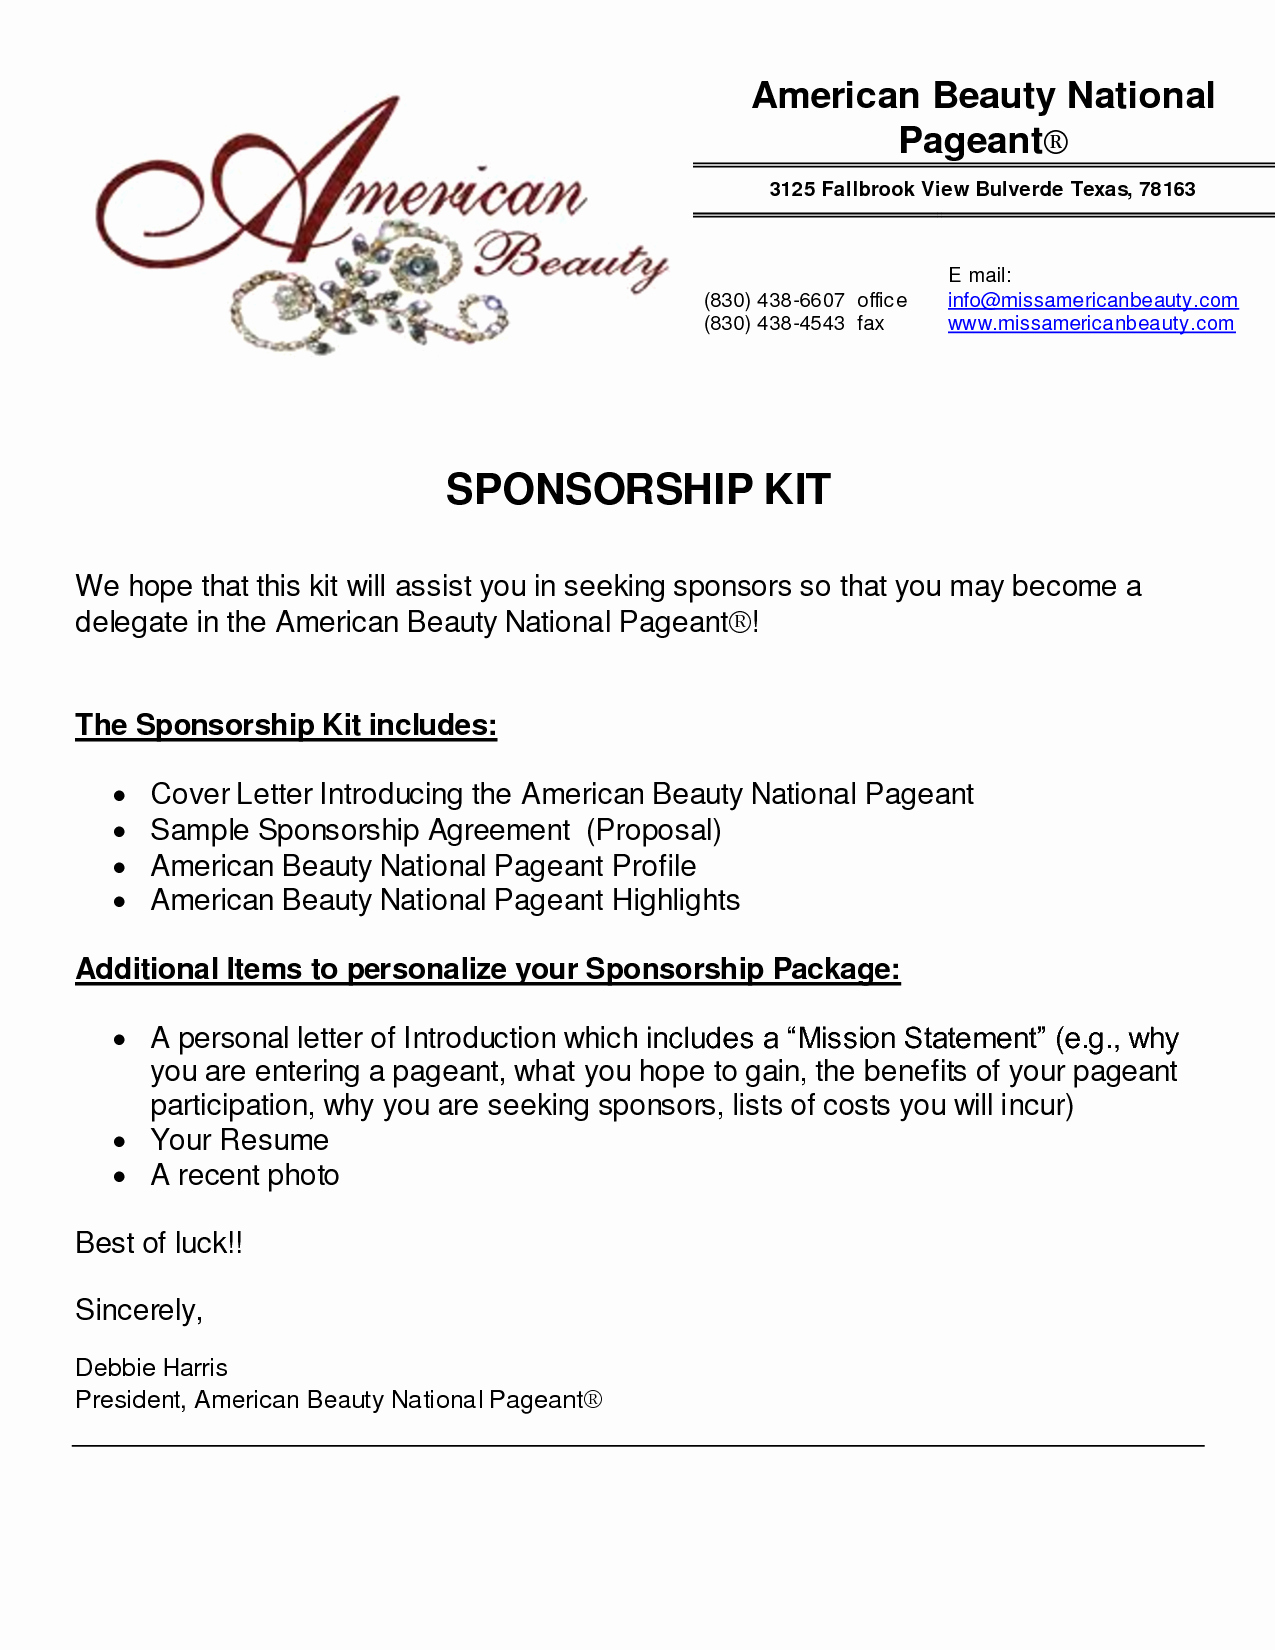 Free Sponsorship Proposal Template Inspirational 6 Sponsorship Proposal Templates Excel Pdf formats